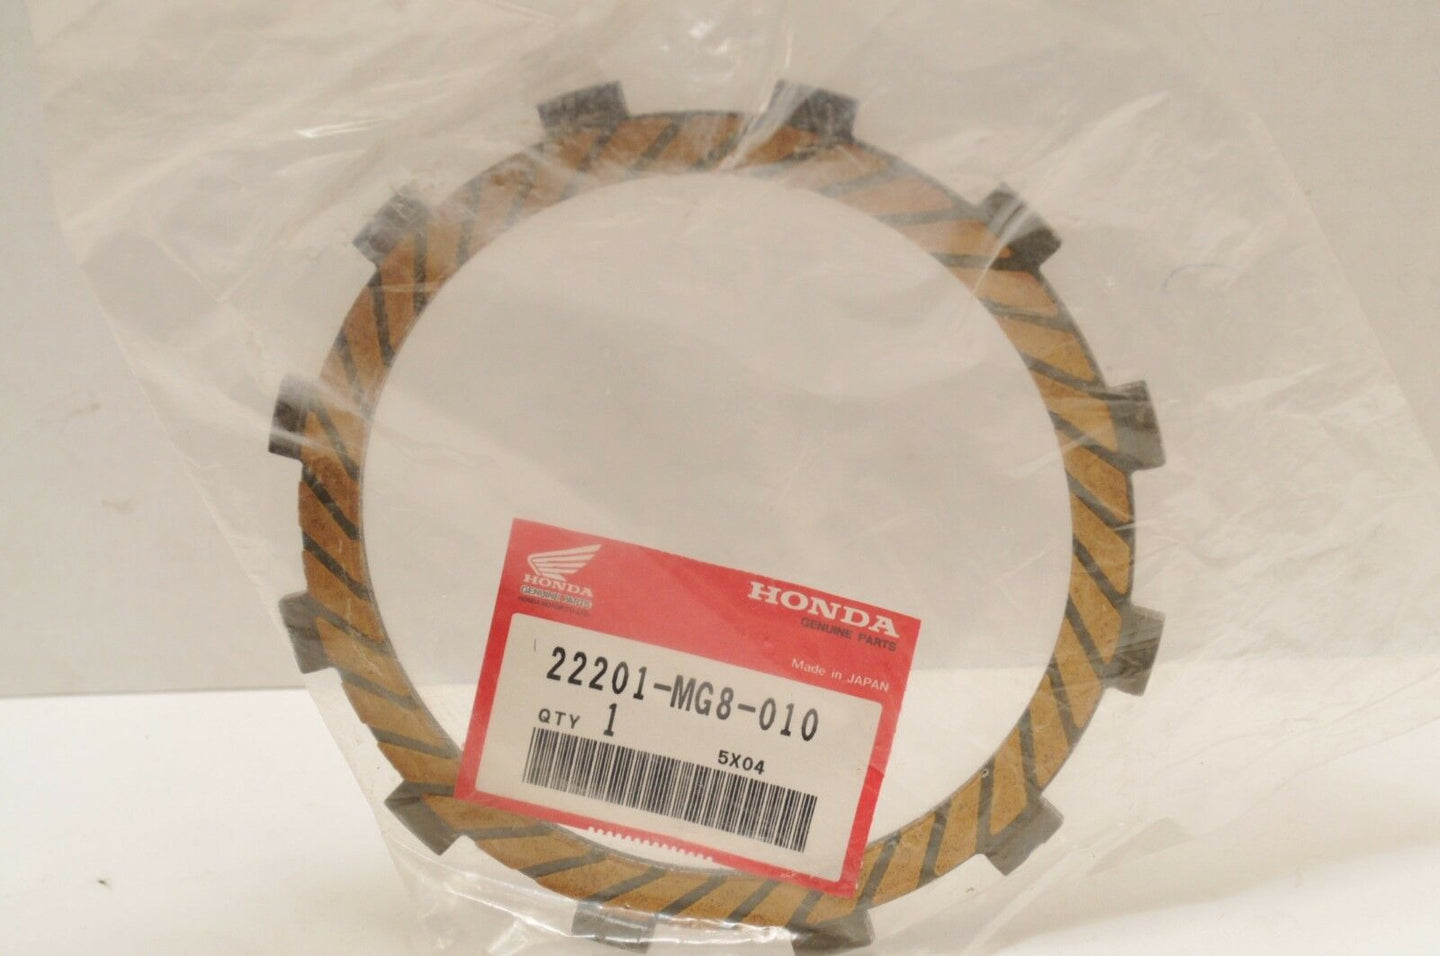 NEW NOS OEM HONDA CLUTCH FRICTION DISC 22201-MG8-010 VT1100C VT750C VT700C ++